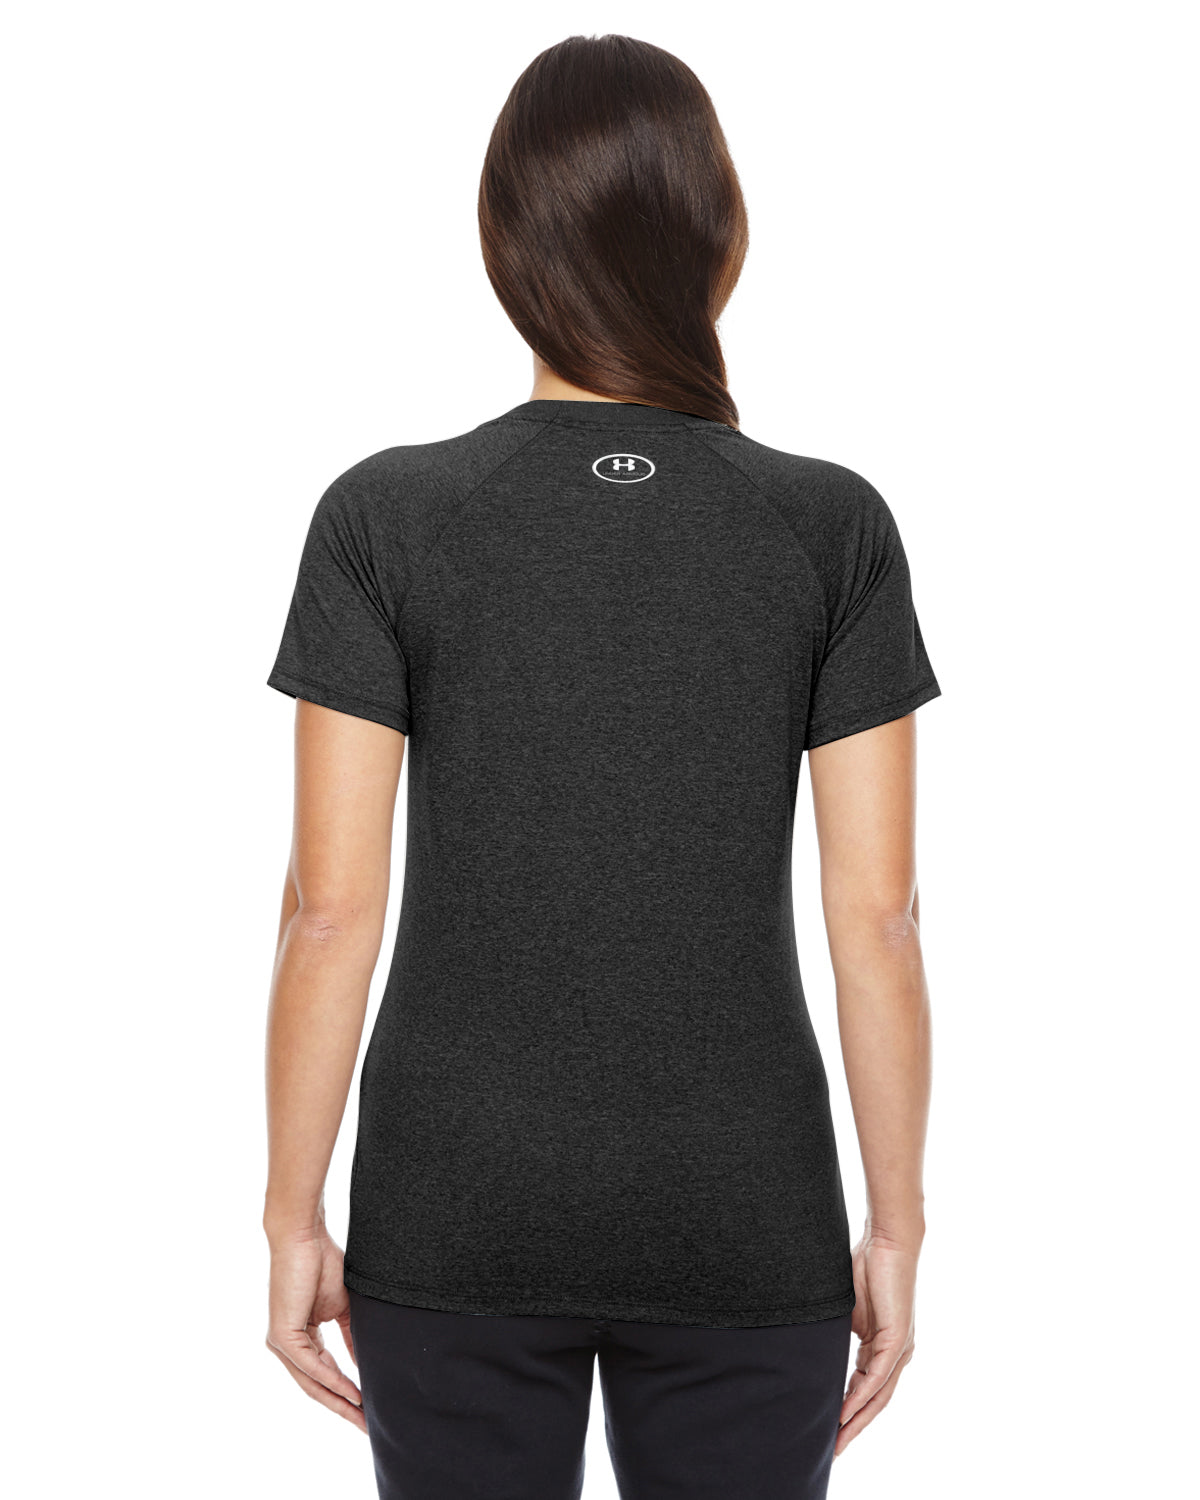 UNDER ARMOUR LADIES' LOCKER T-SHIRT